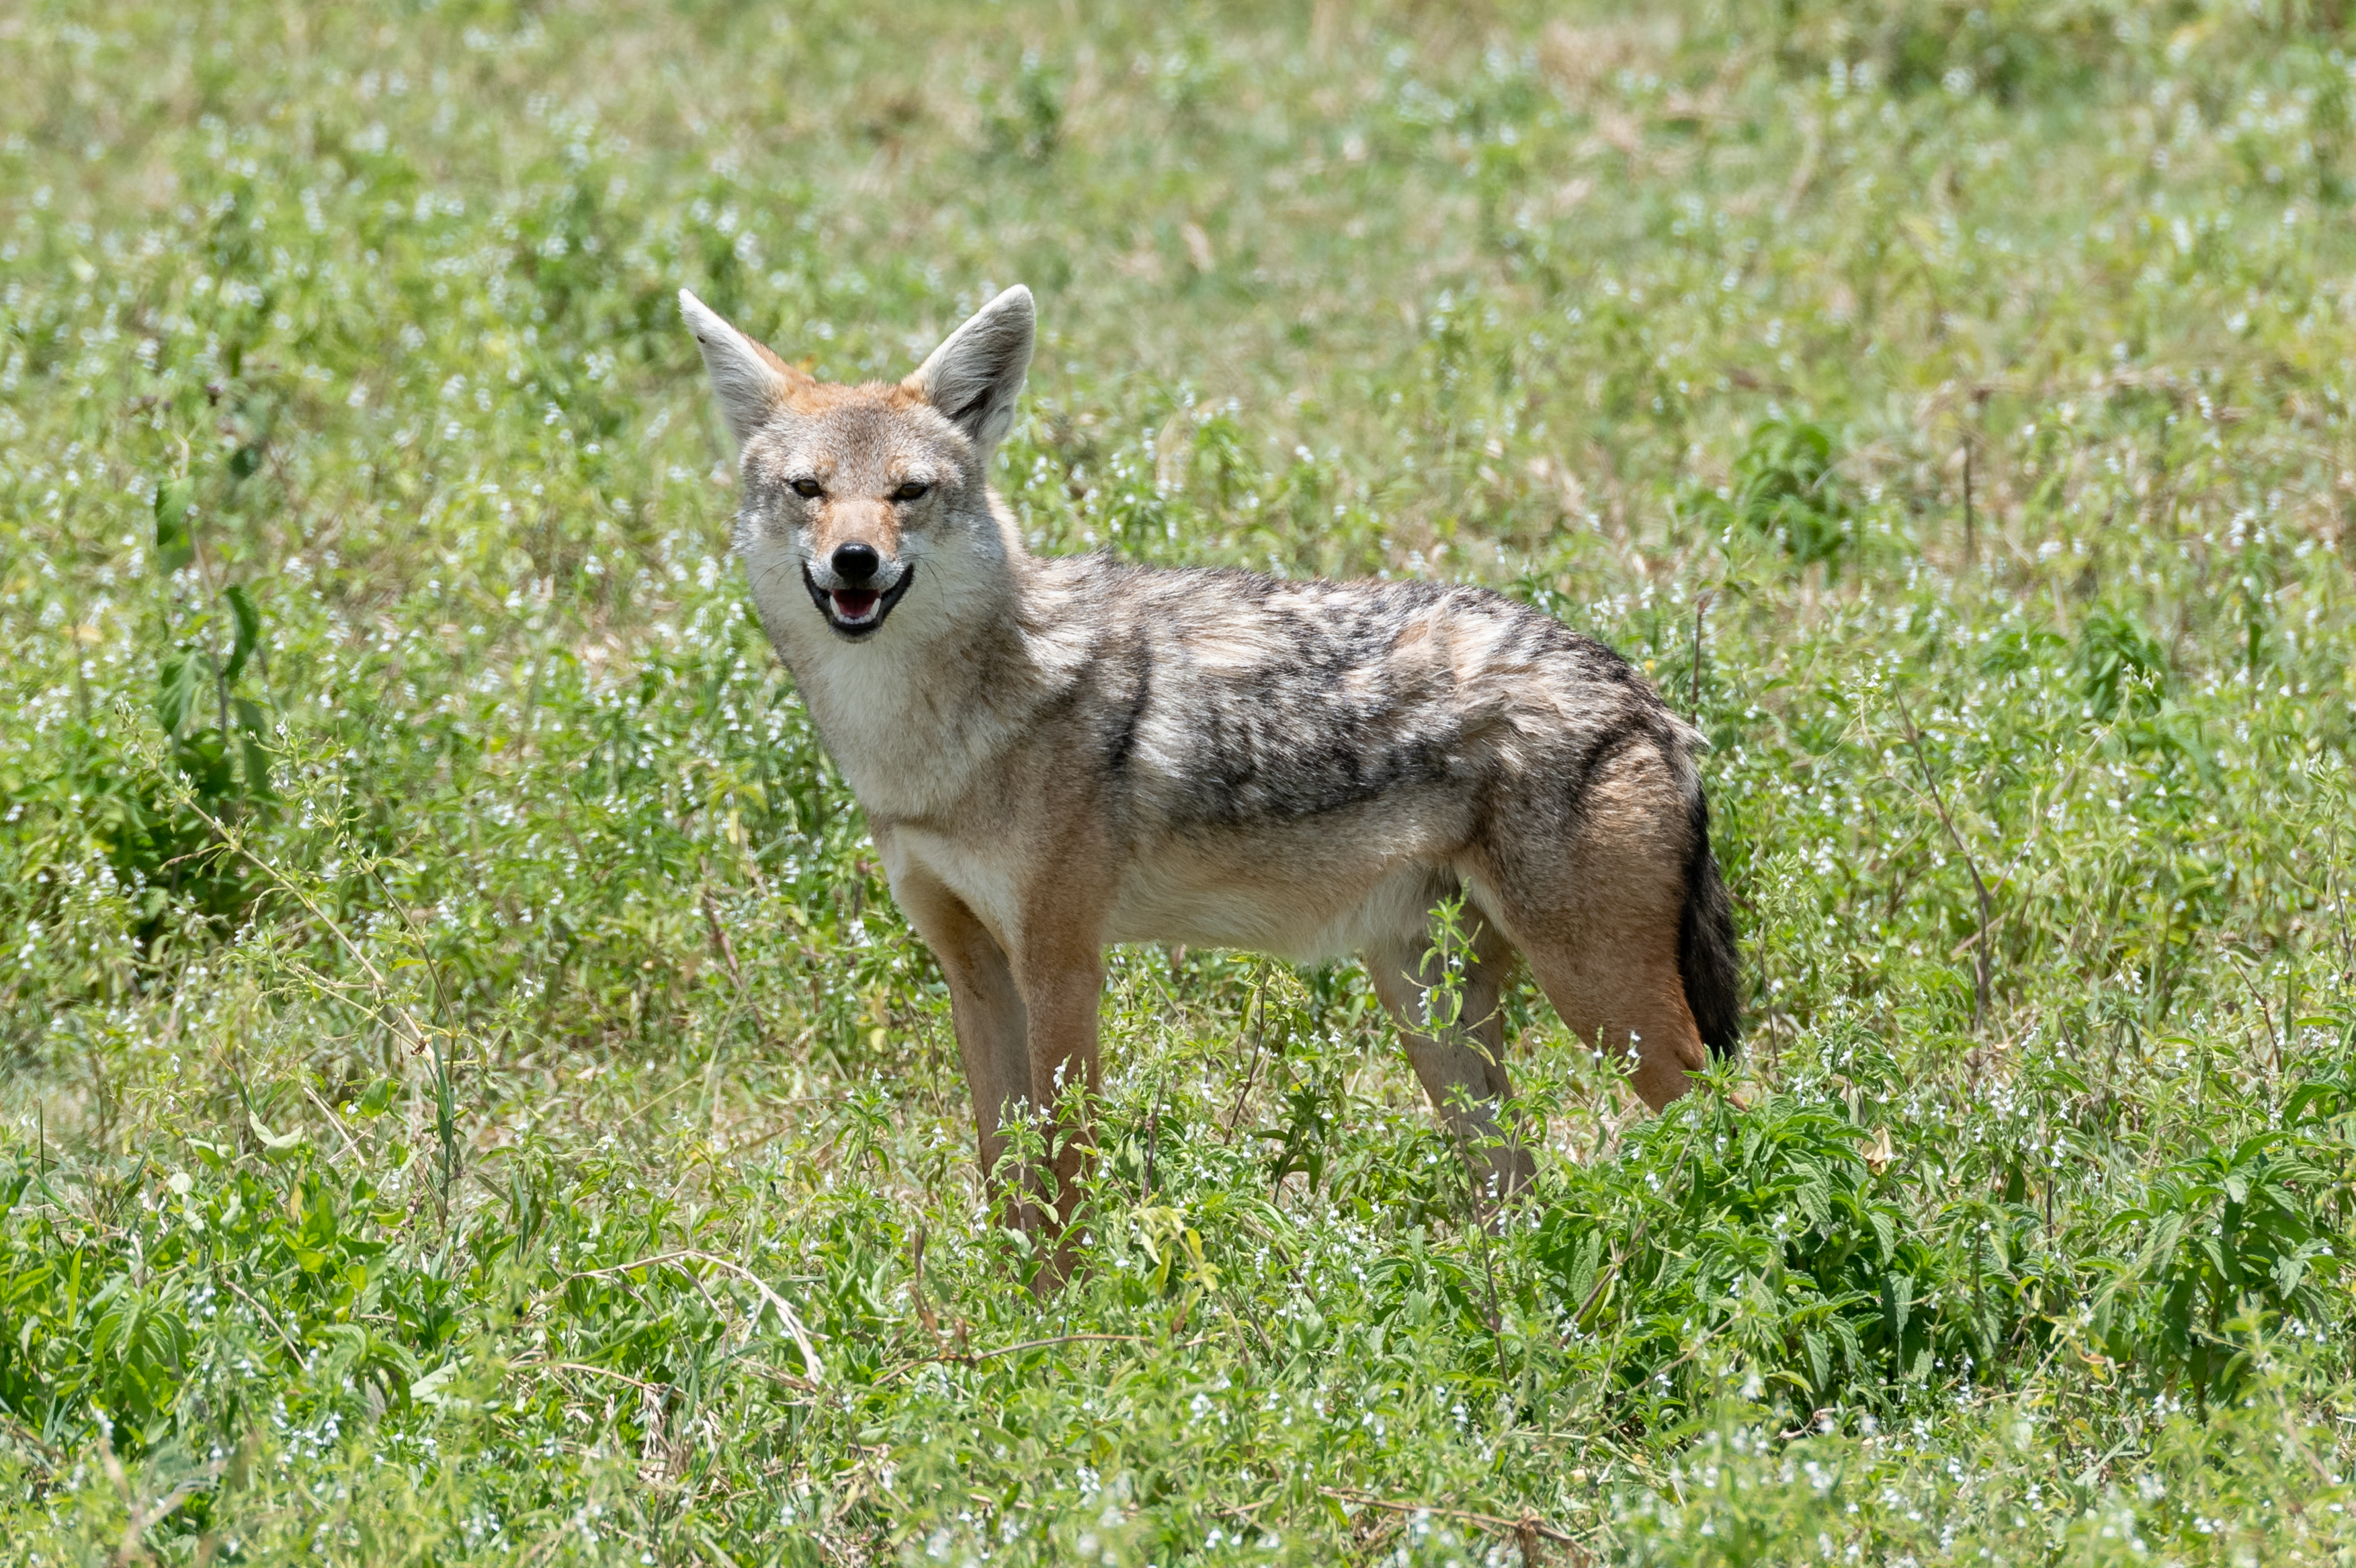 91636 download wallpaper Animals, Jackal, Animal, Predator, Wildlife screensavers and pictures for free